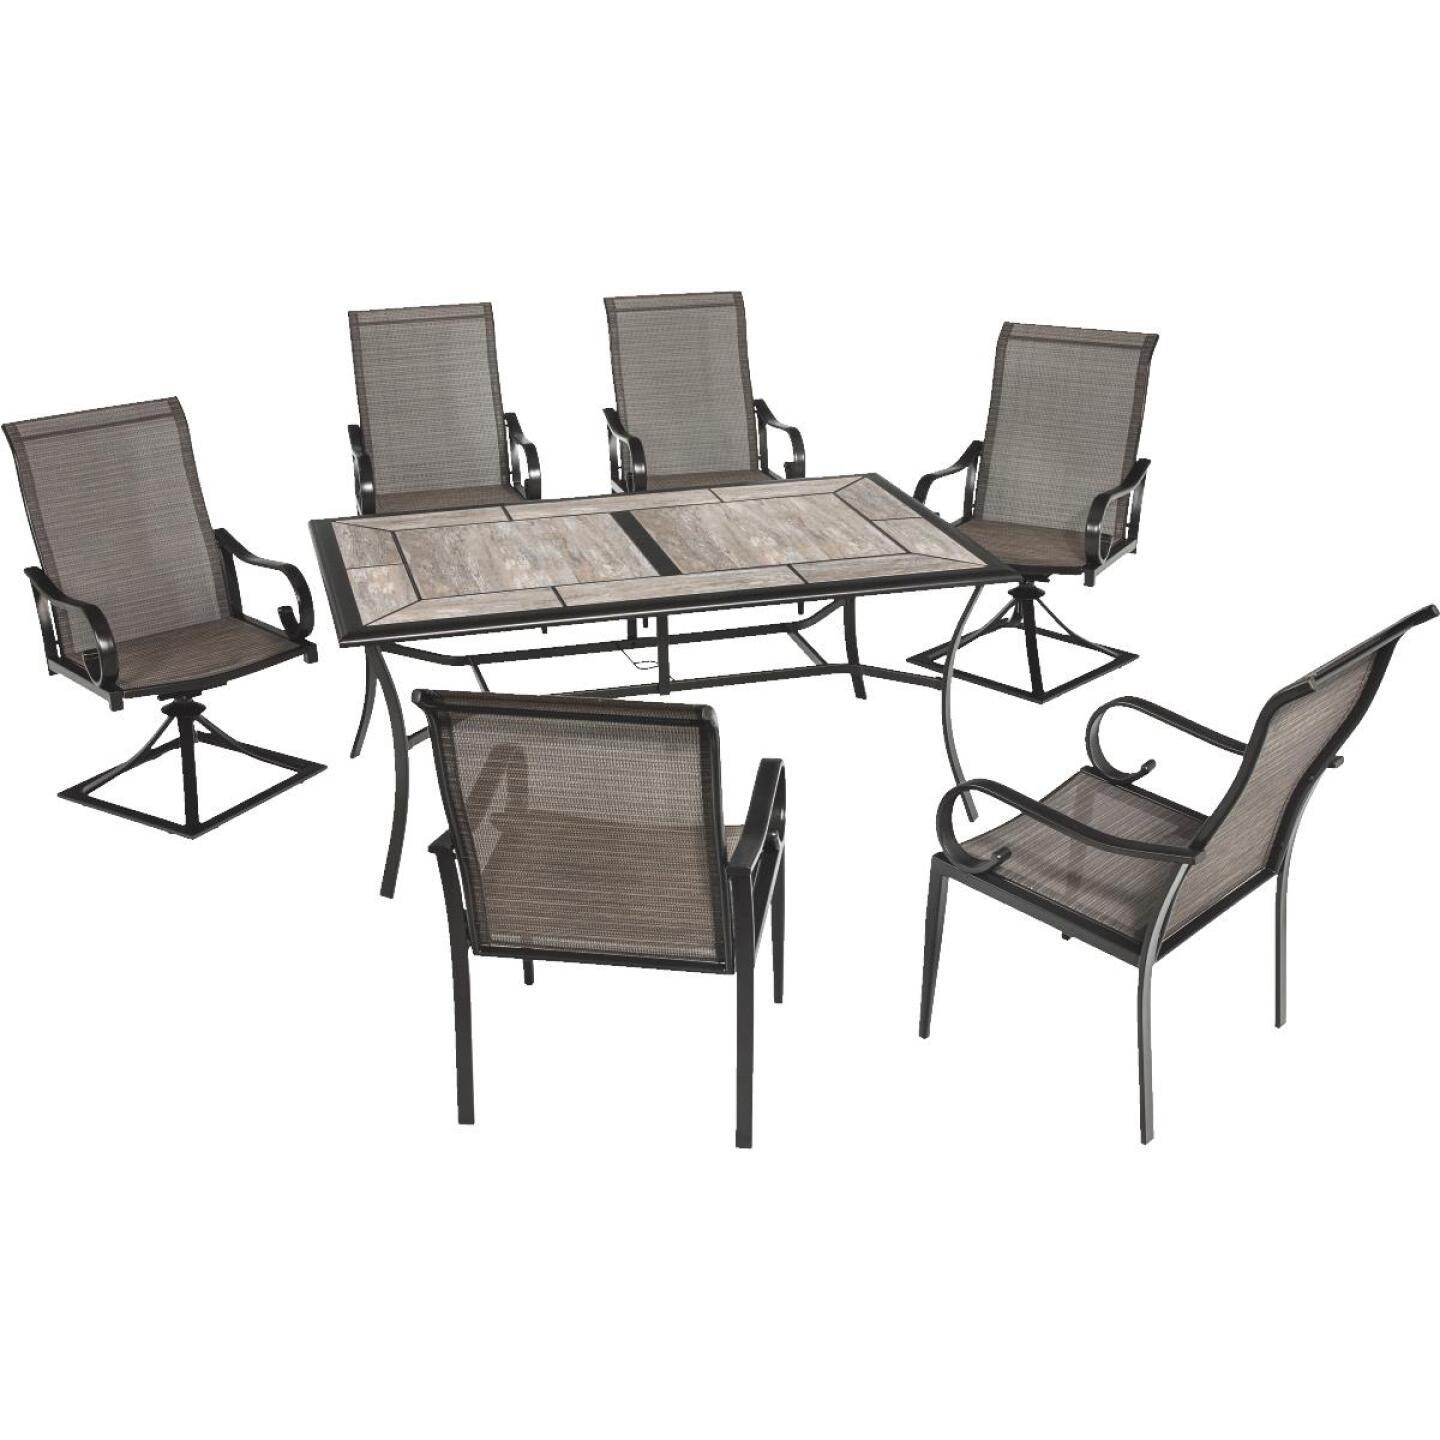 Outdoor Expressions Berkshire 7-Piece Dining Set Image 76